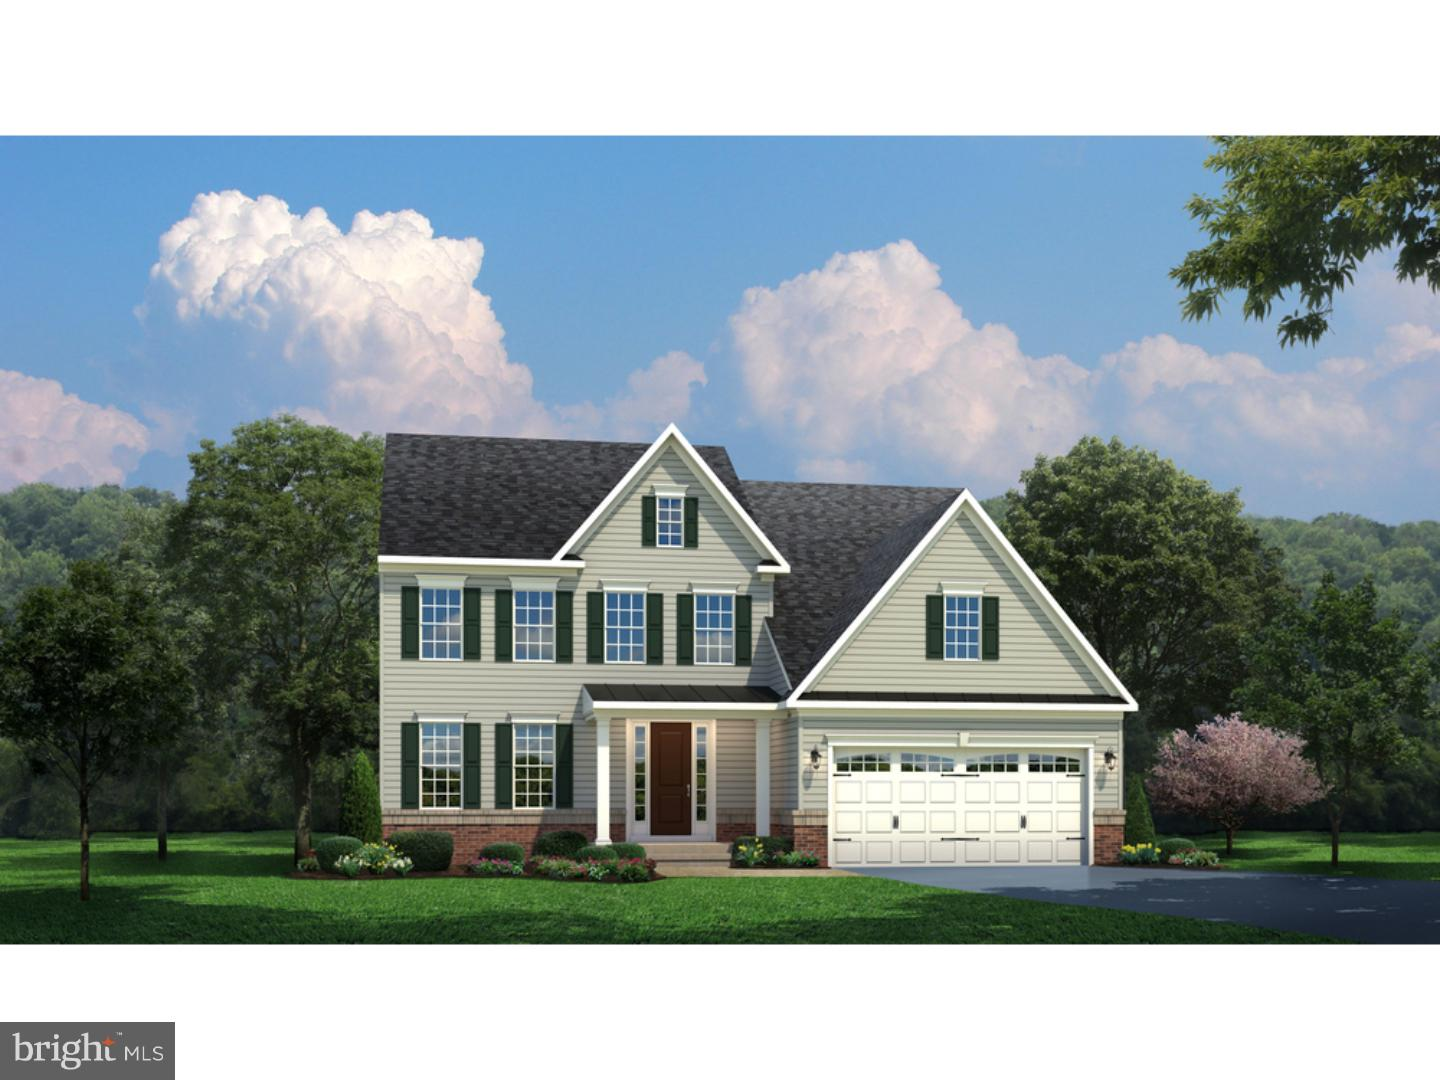 1029 Preserve Lane West Chester, PA 19382